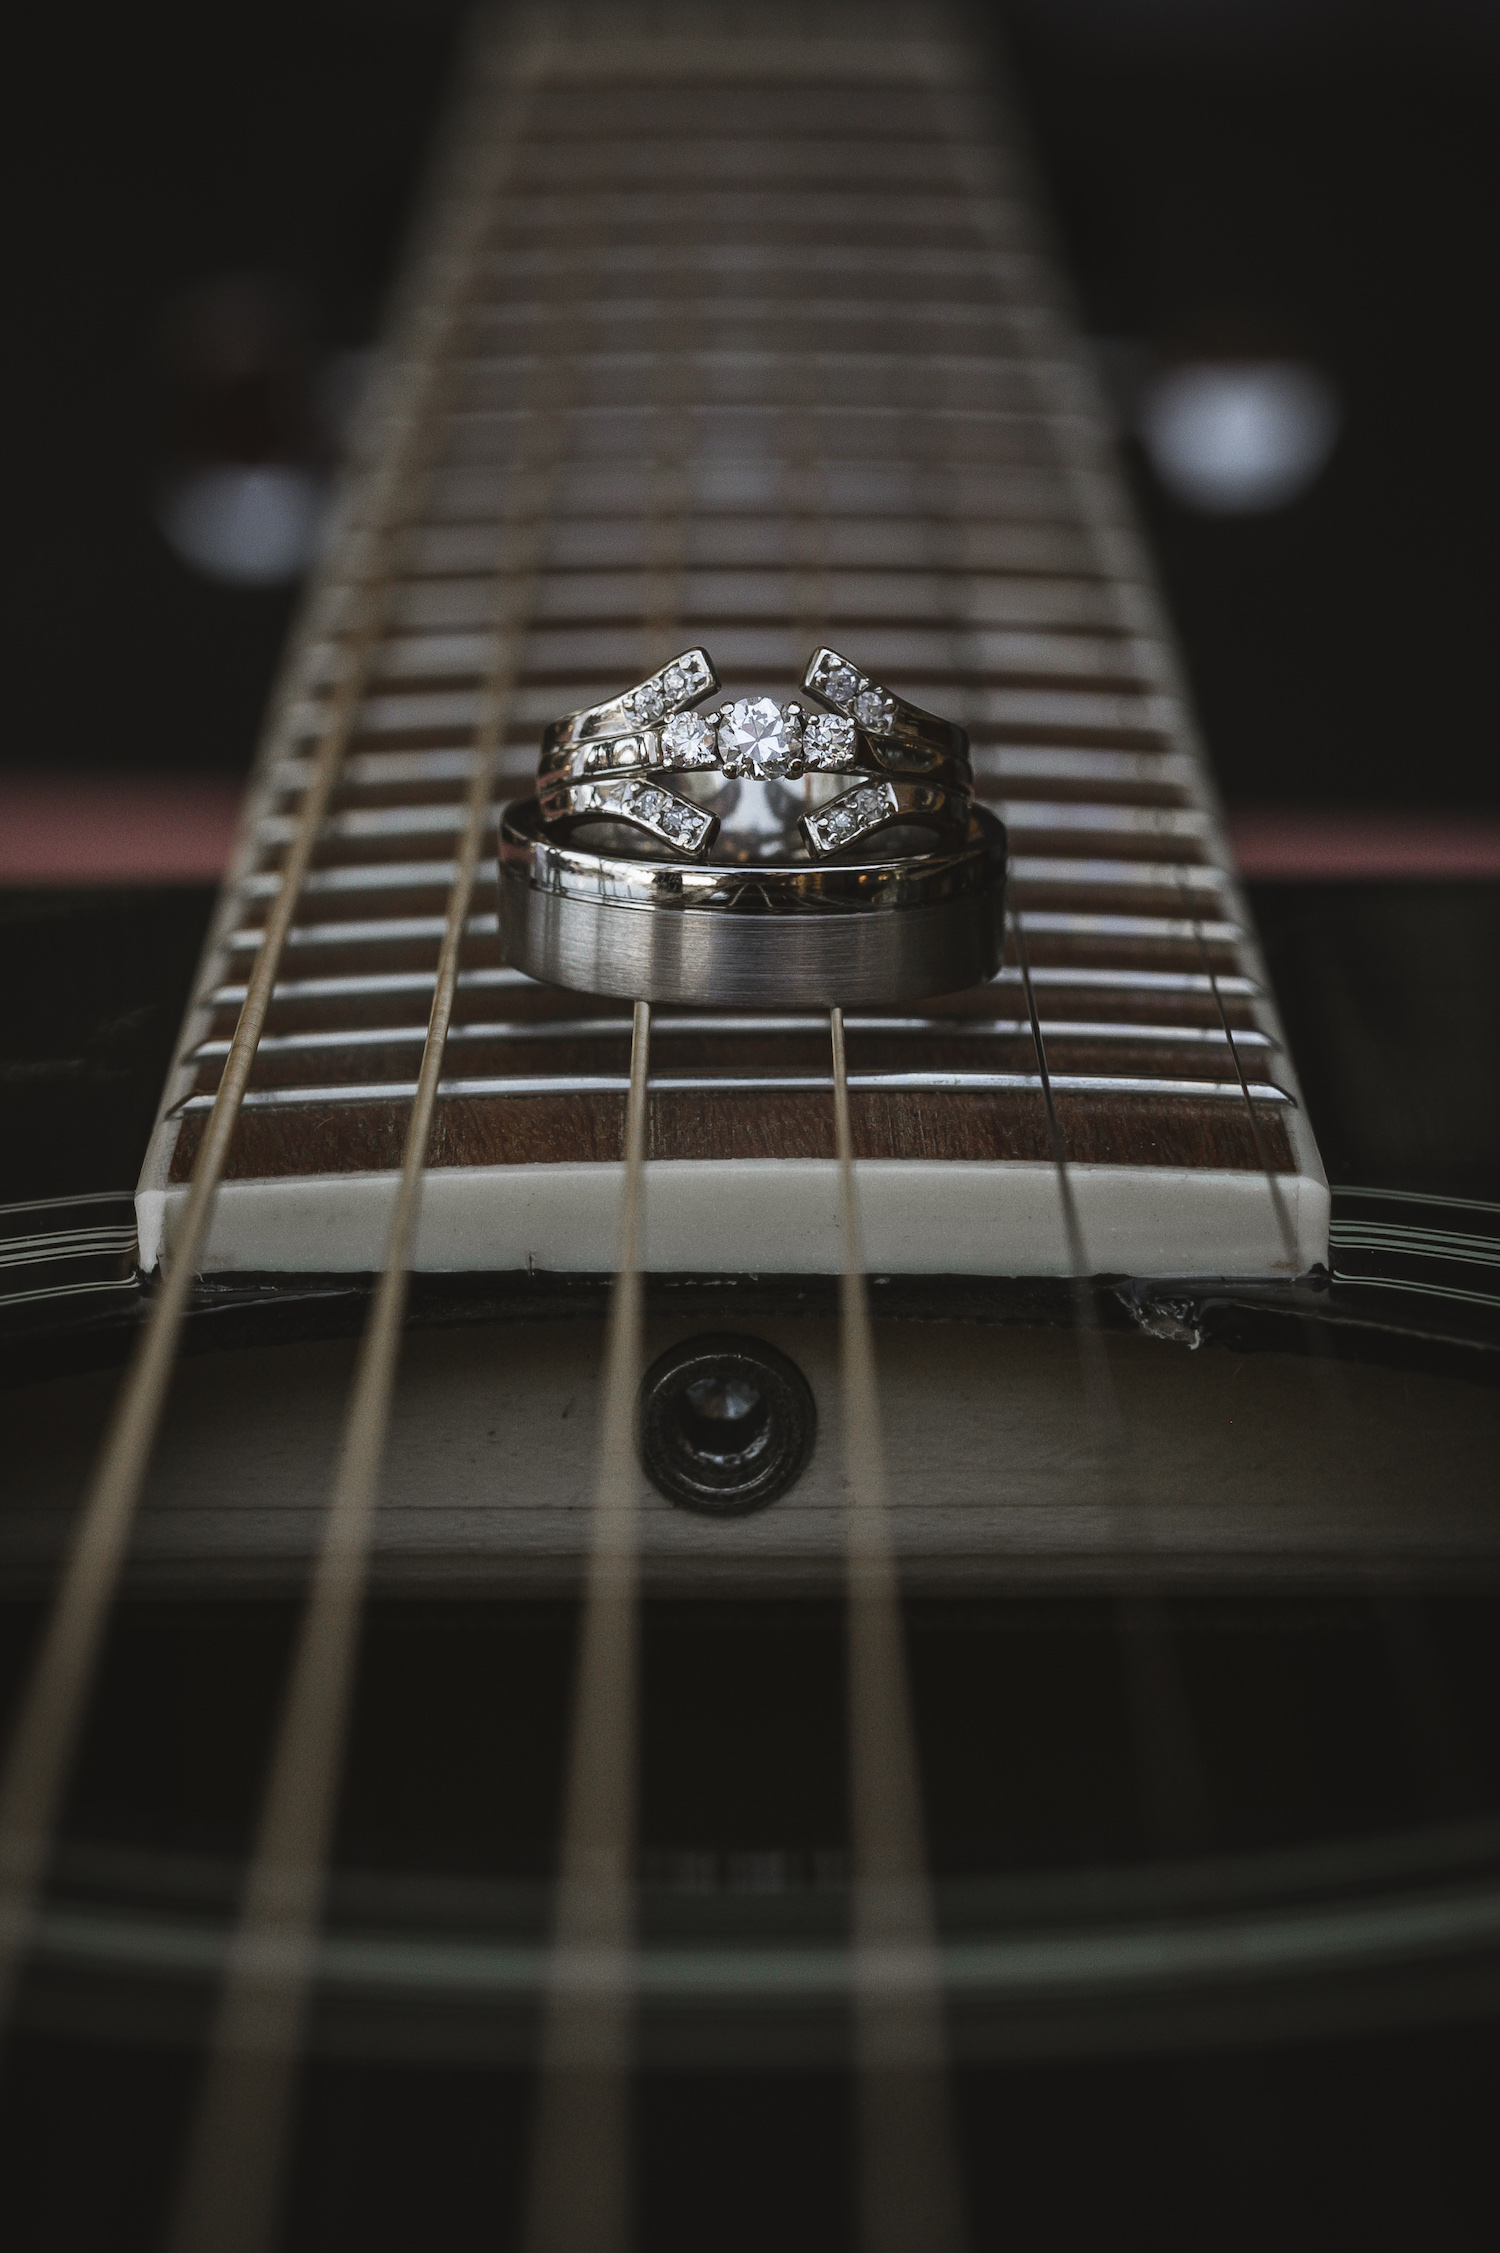 Rings laying on guitar strings